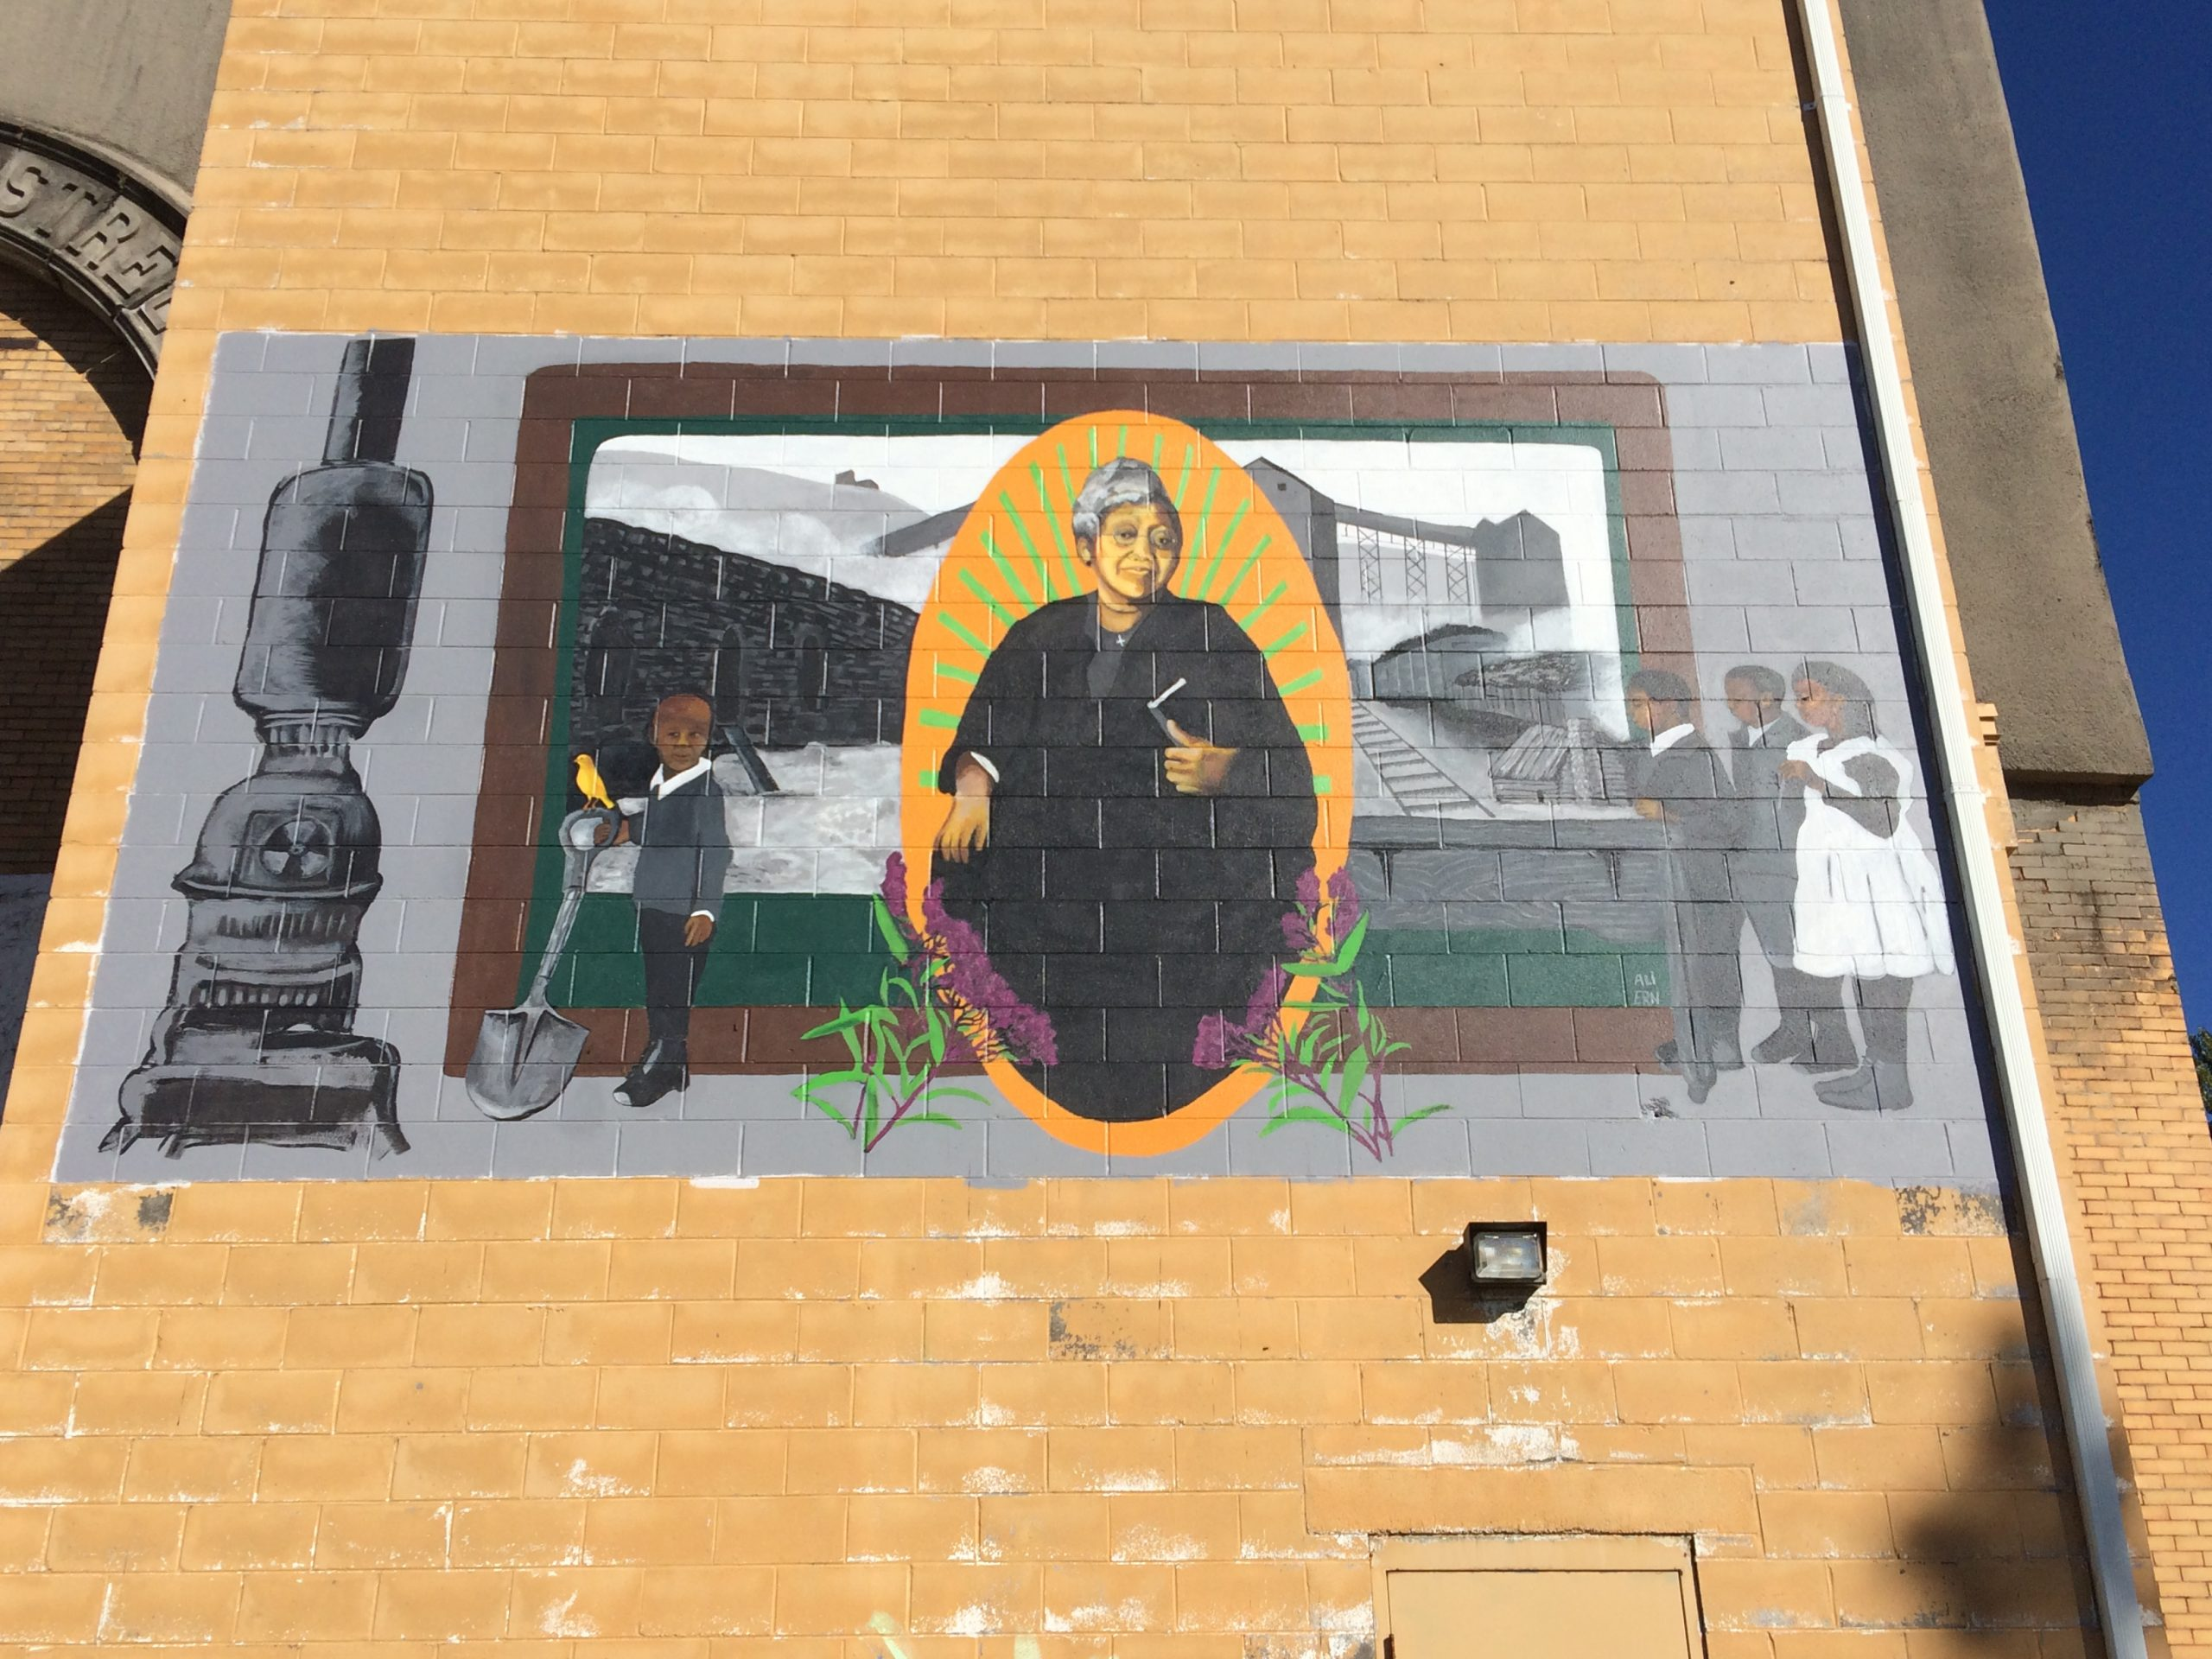 completed mural